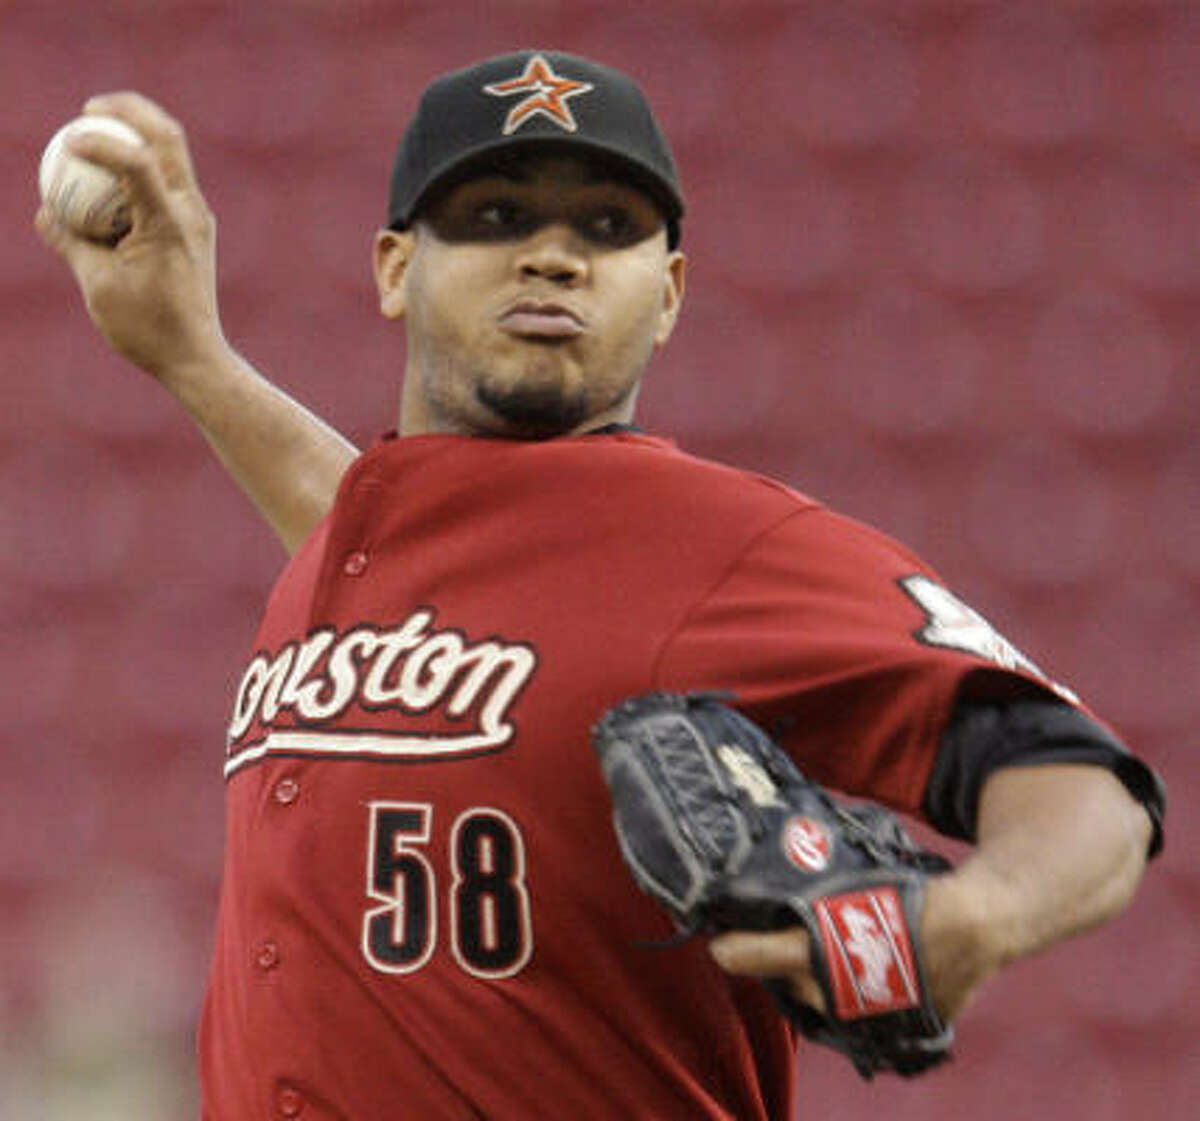 Sept. 16: Reds 6, Astros 5 Astros starting pitcher Yorman Bazardo gave up four runs and allowed seven hits in five innings of work.